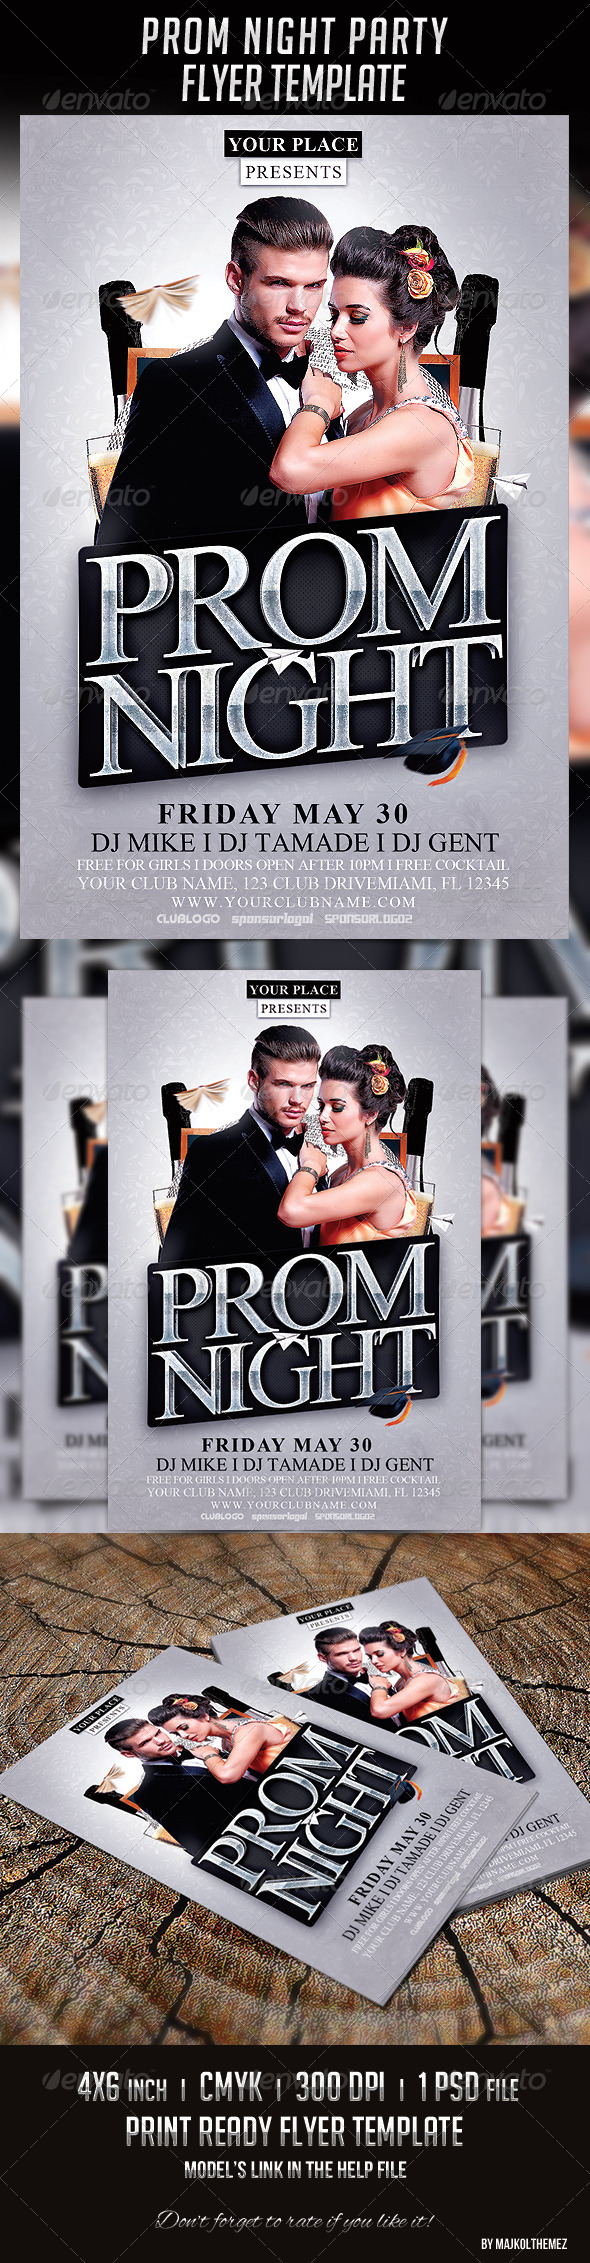 GraphicRiver Prom Night Party Flyer Template 7789708